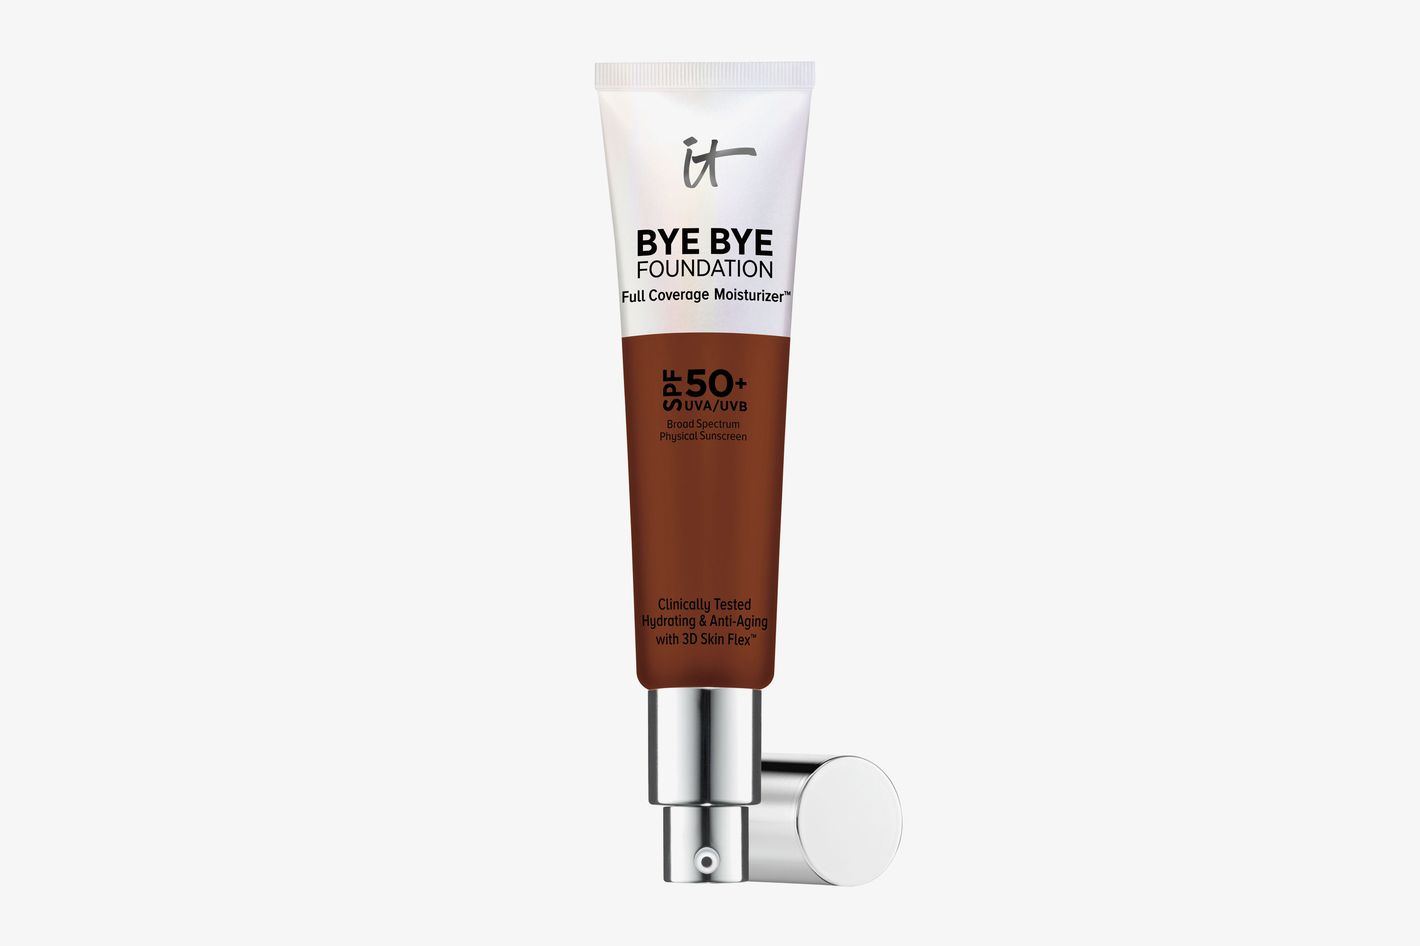 Bye Bye Foundation Full Coverage Moisturizer with SPF 50+ Deep